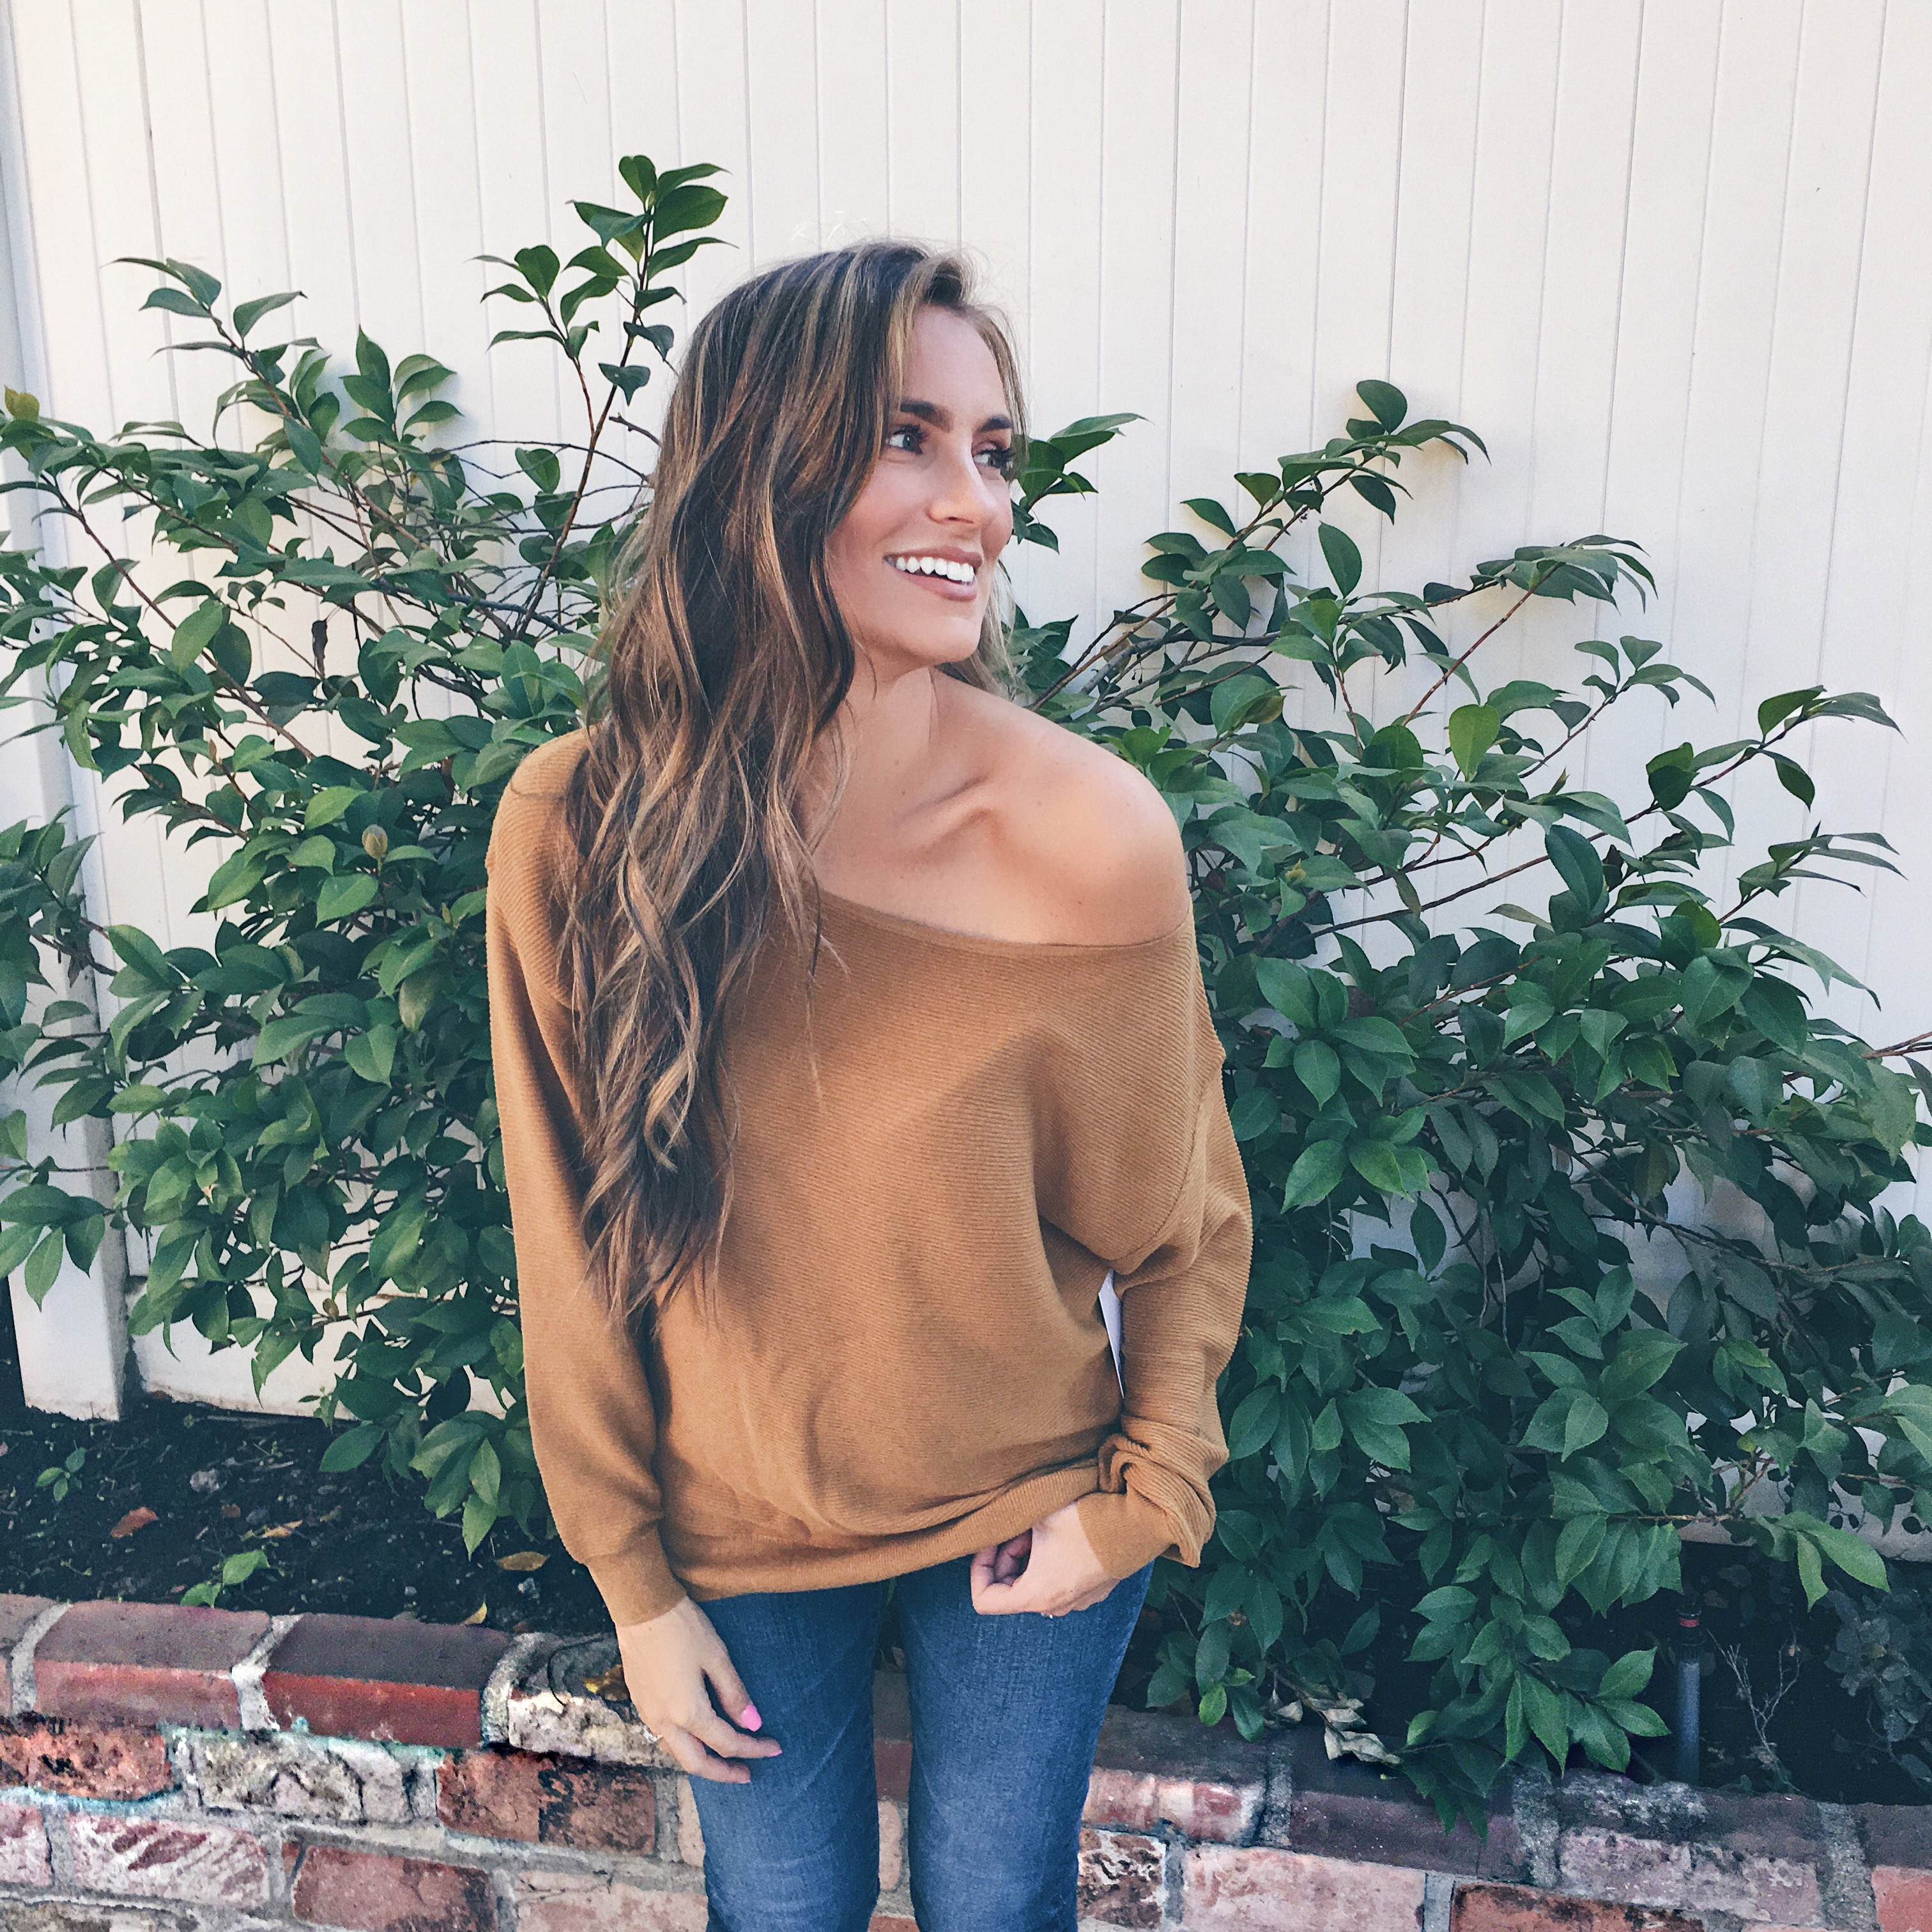 Off the shoulder sweater and jeans outfit nordstrom anniversary sale angela lanter hello gorgeous